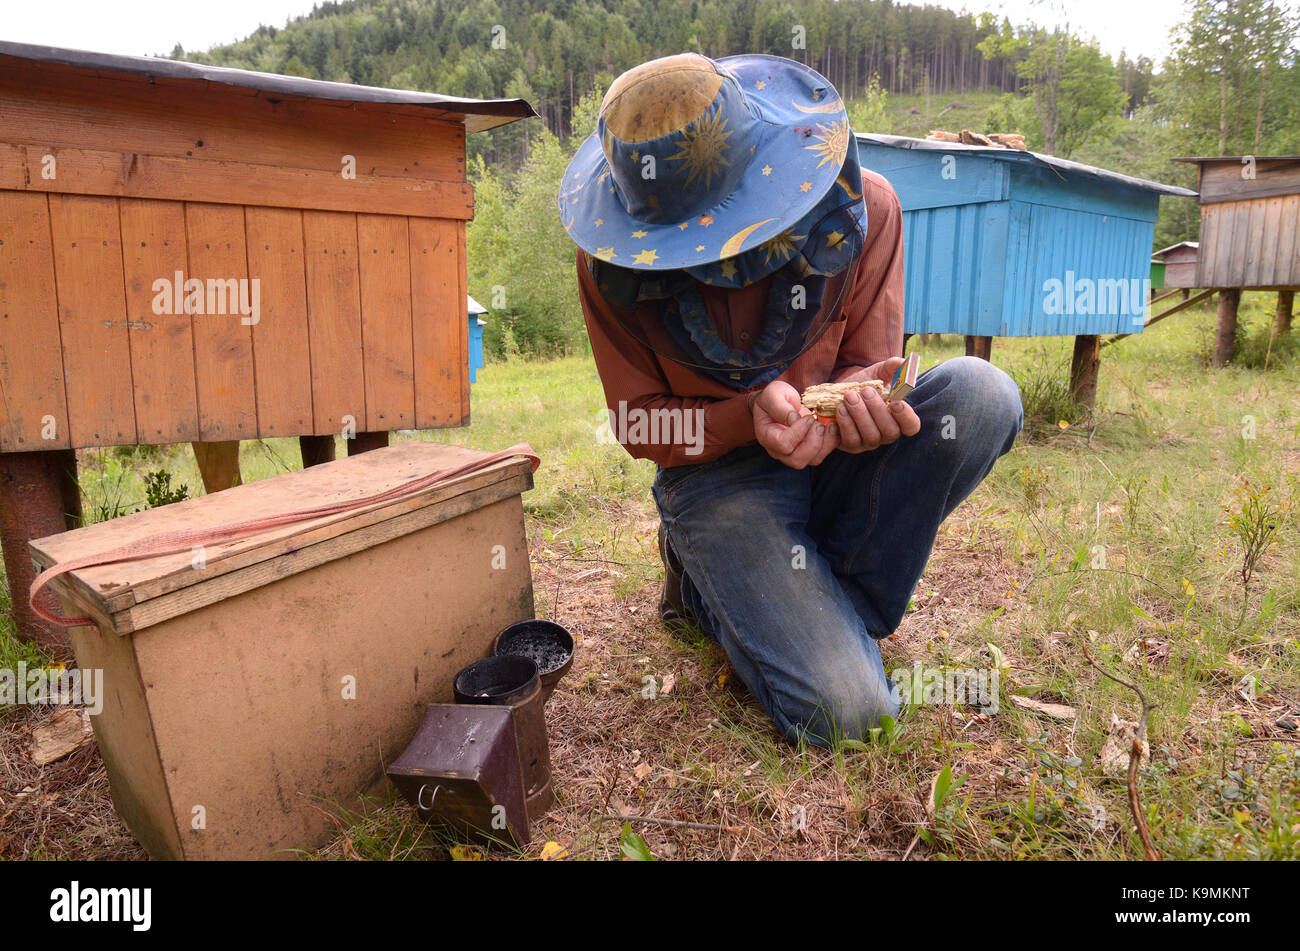 Apiary in the Carpathians. Beekeeper preparing a smoker for fumigating bees. - Stock Image